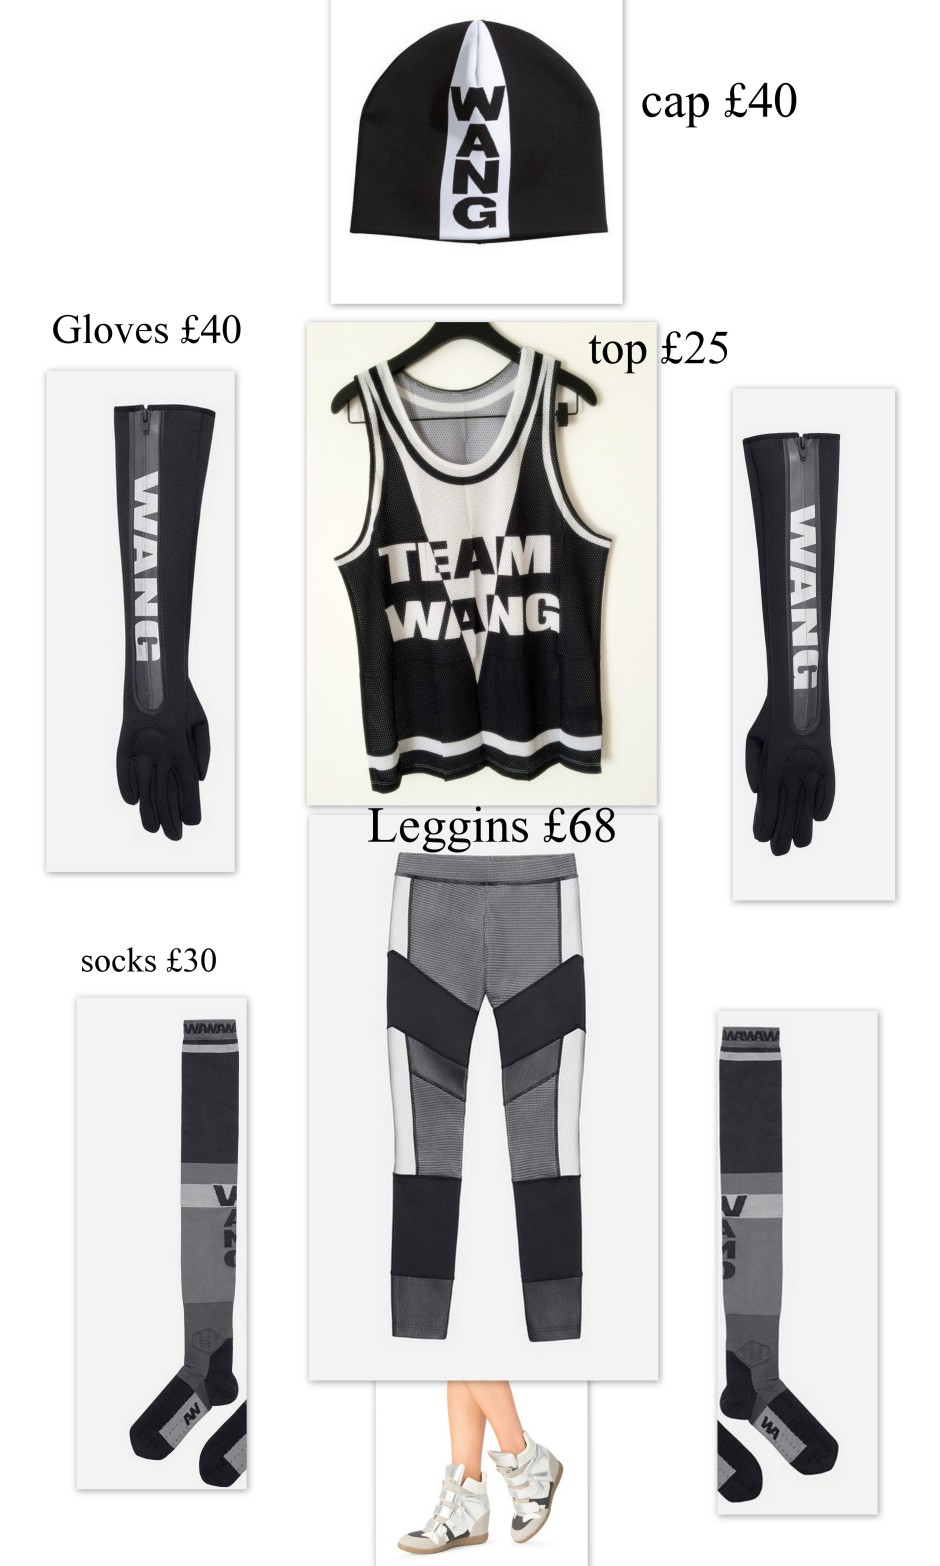 ALEXANDER WANG x HM for sale LONDON